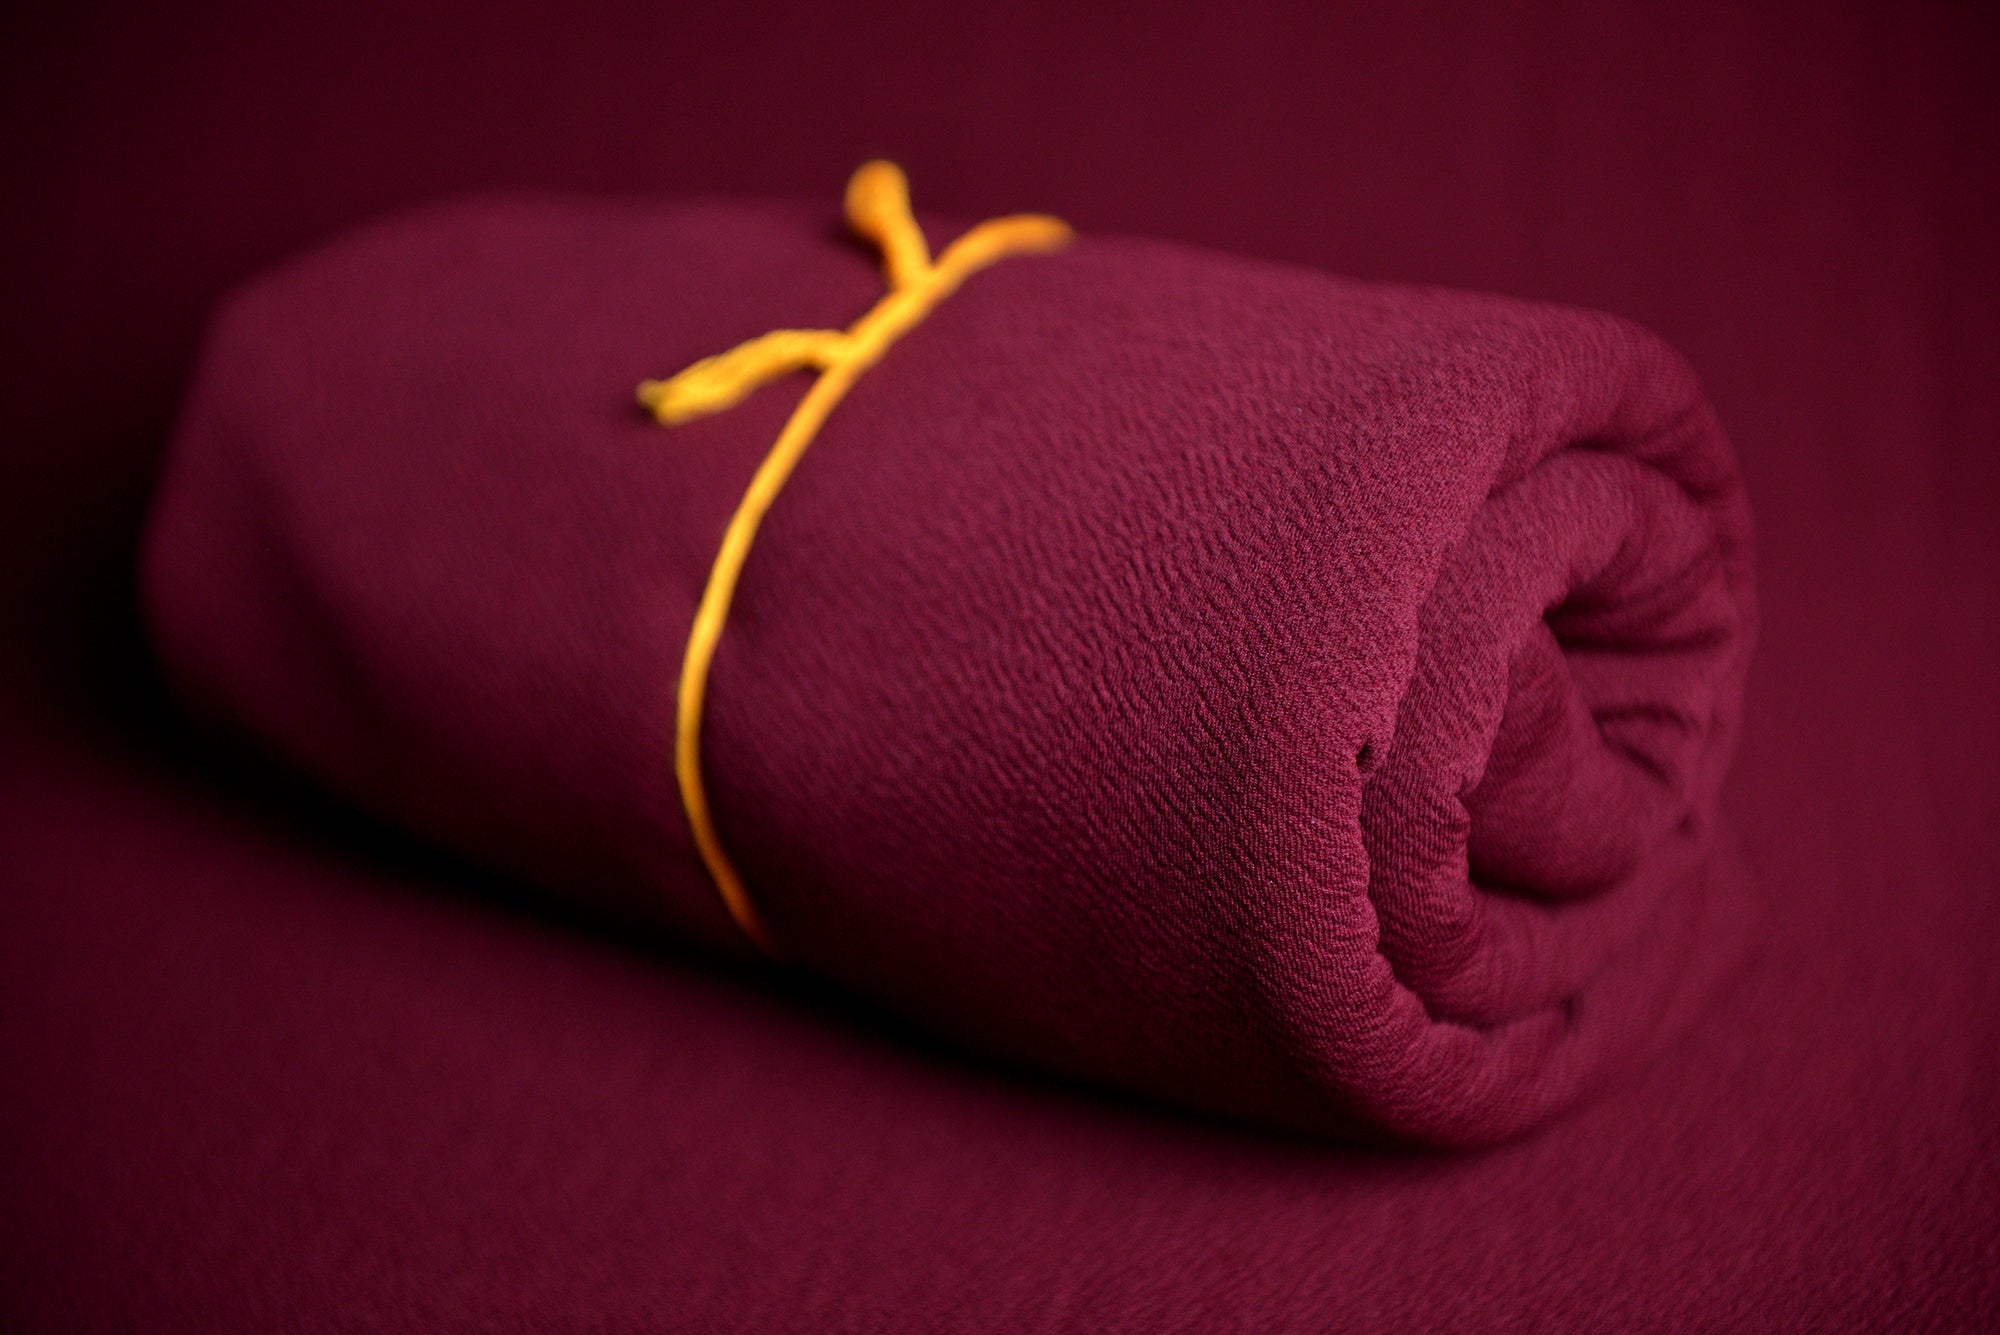 Bean Bag Fabric - Textured - Burgundy-Newborn Photography Props